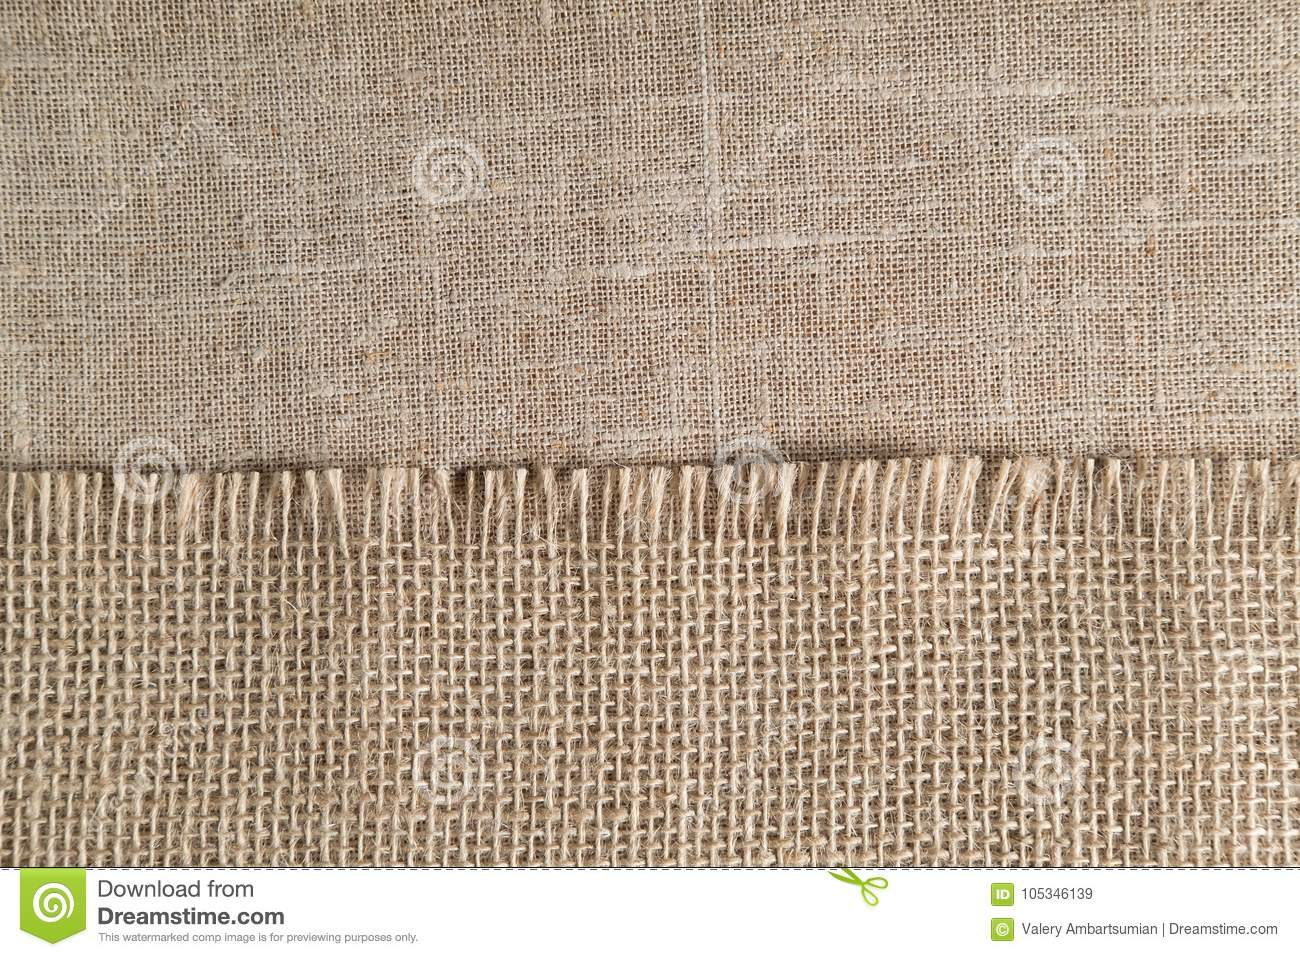 Linen cloth, napkin with the big texture is on the background of the other table cloths